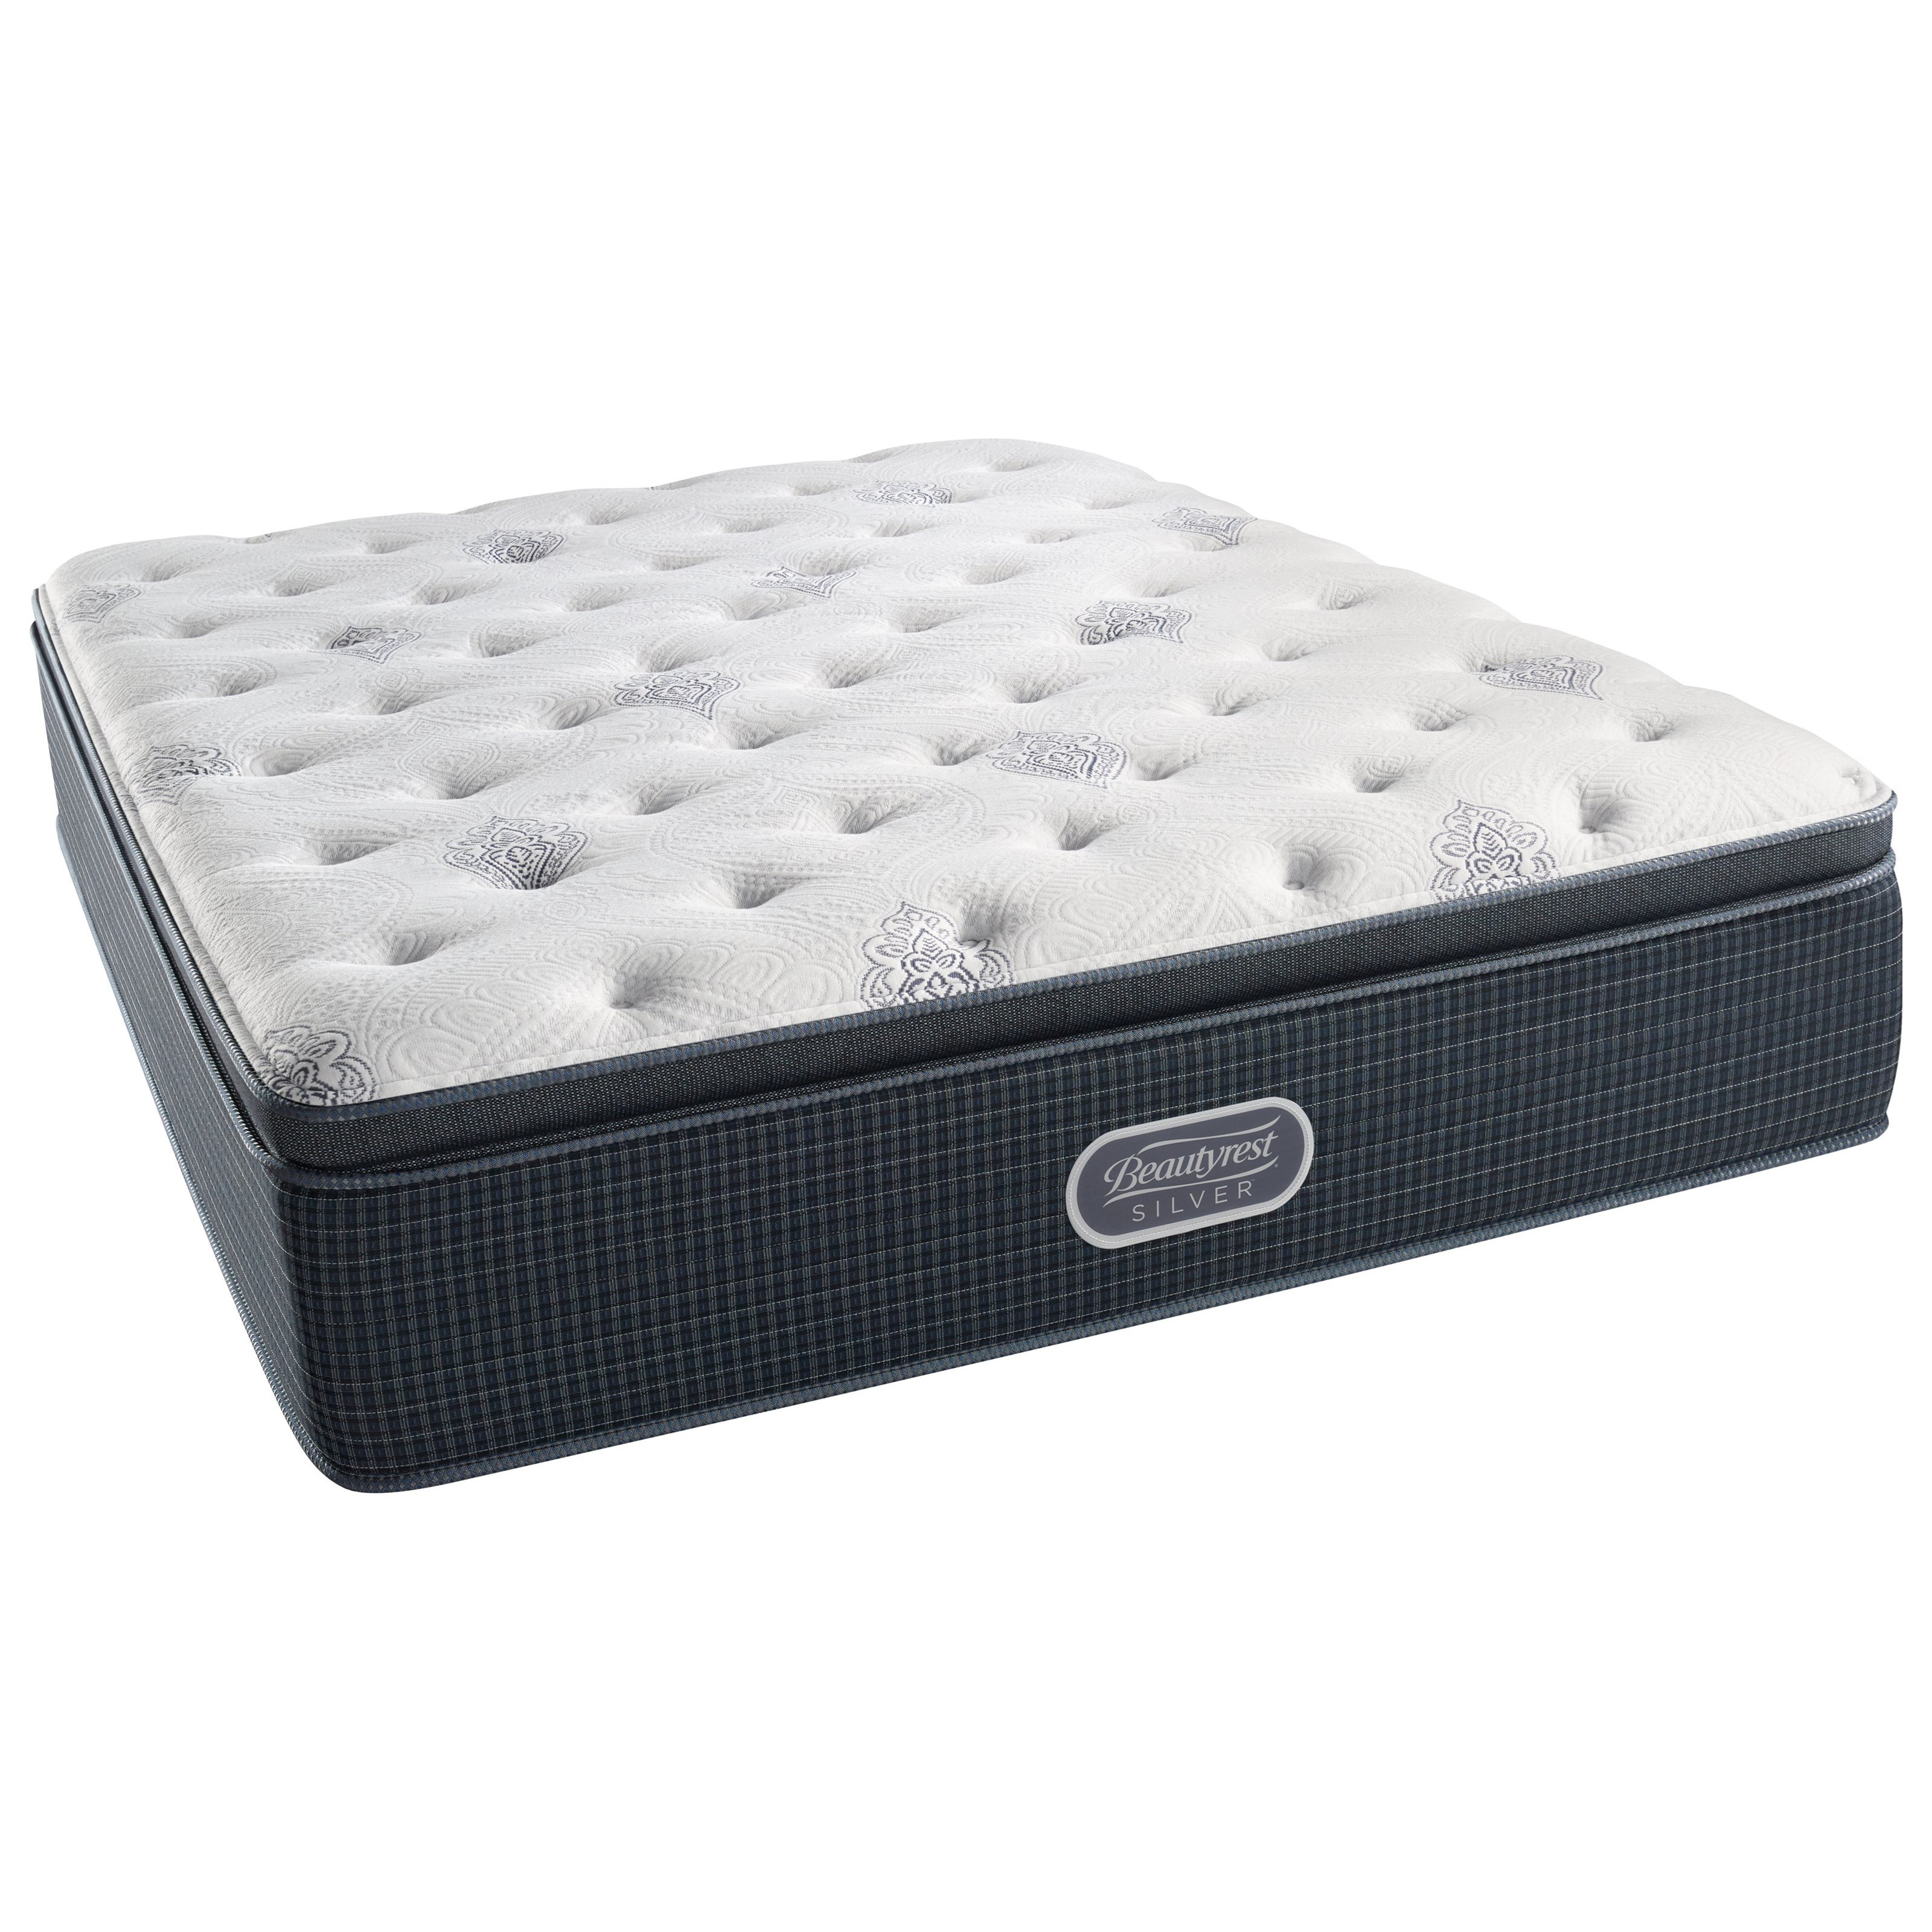 Beautyrest Silver Open Seas Luxury Firm Pillow Top King Adjustable Set - Item Number: 700600244-1060+2xSM1-TXL